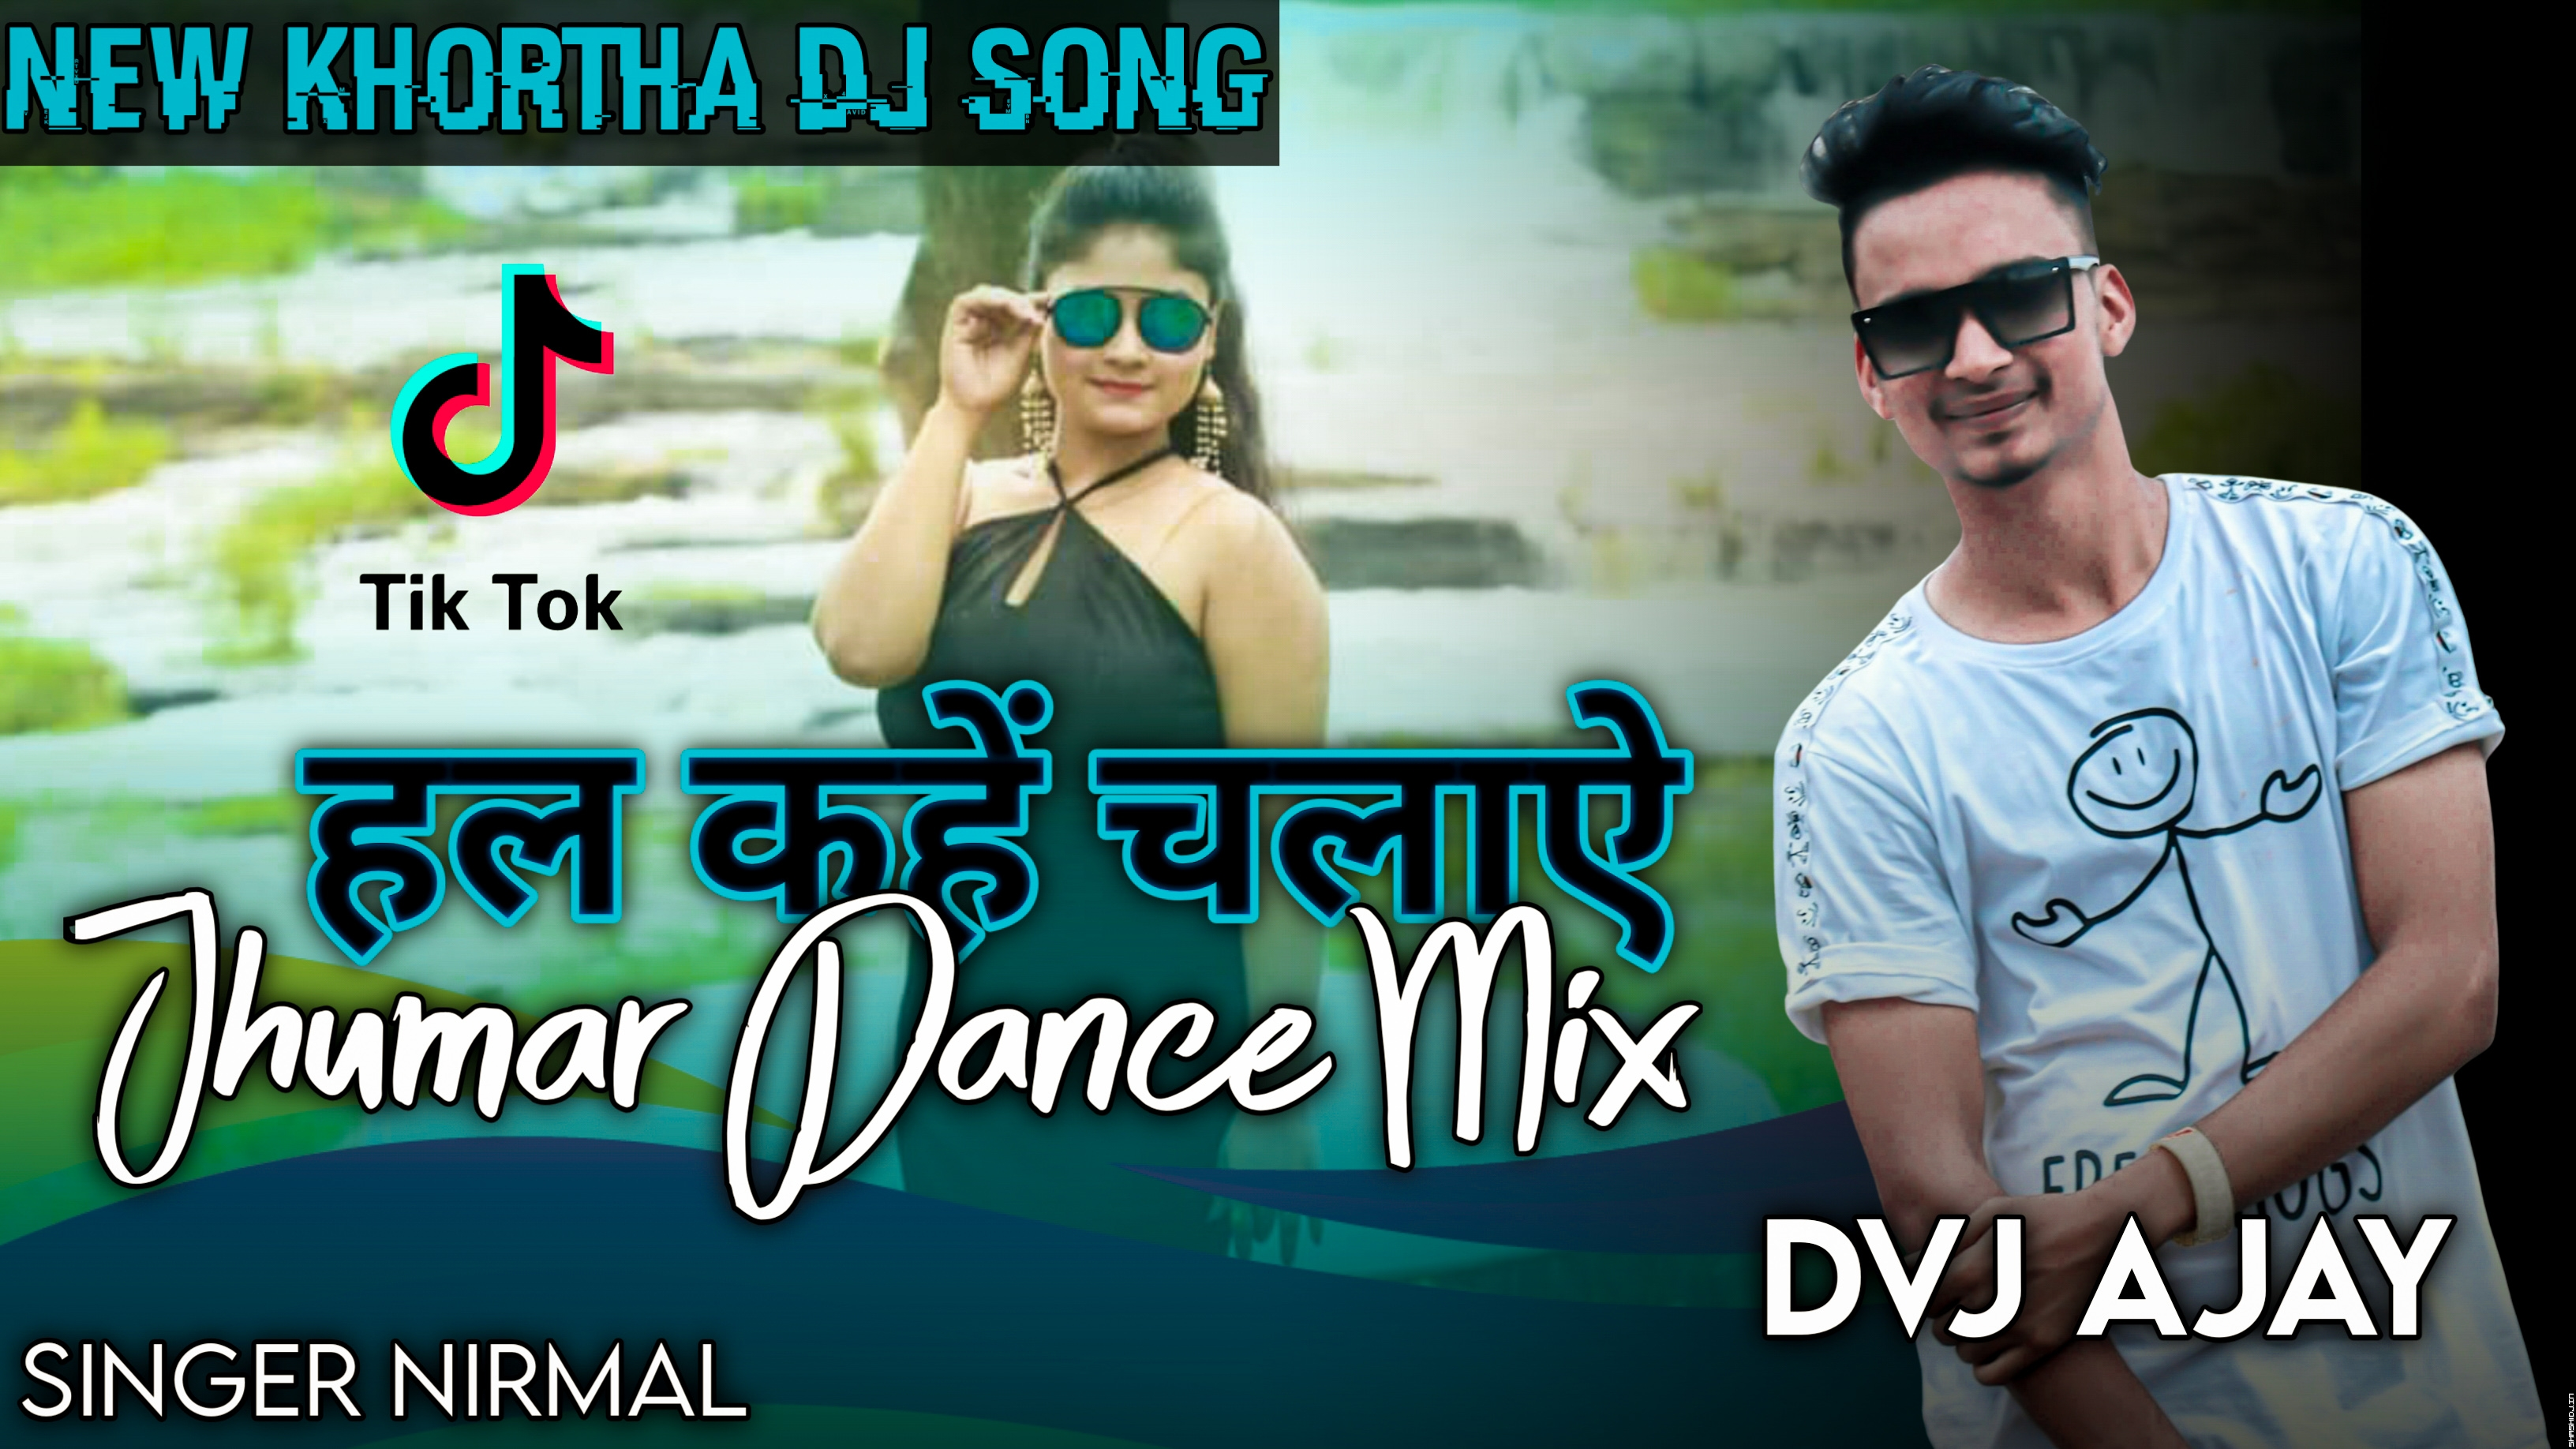 Haal Kahe Chalaye New Khortha DJ Song 2020 .mp3